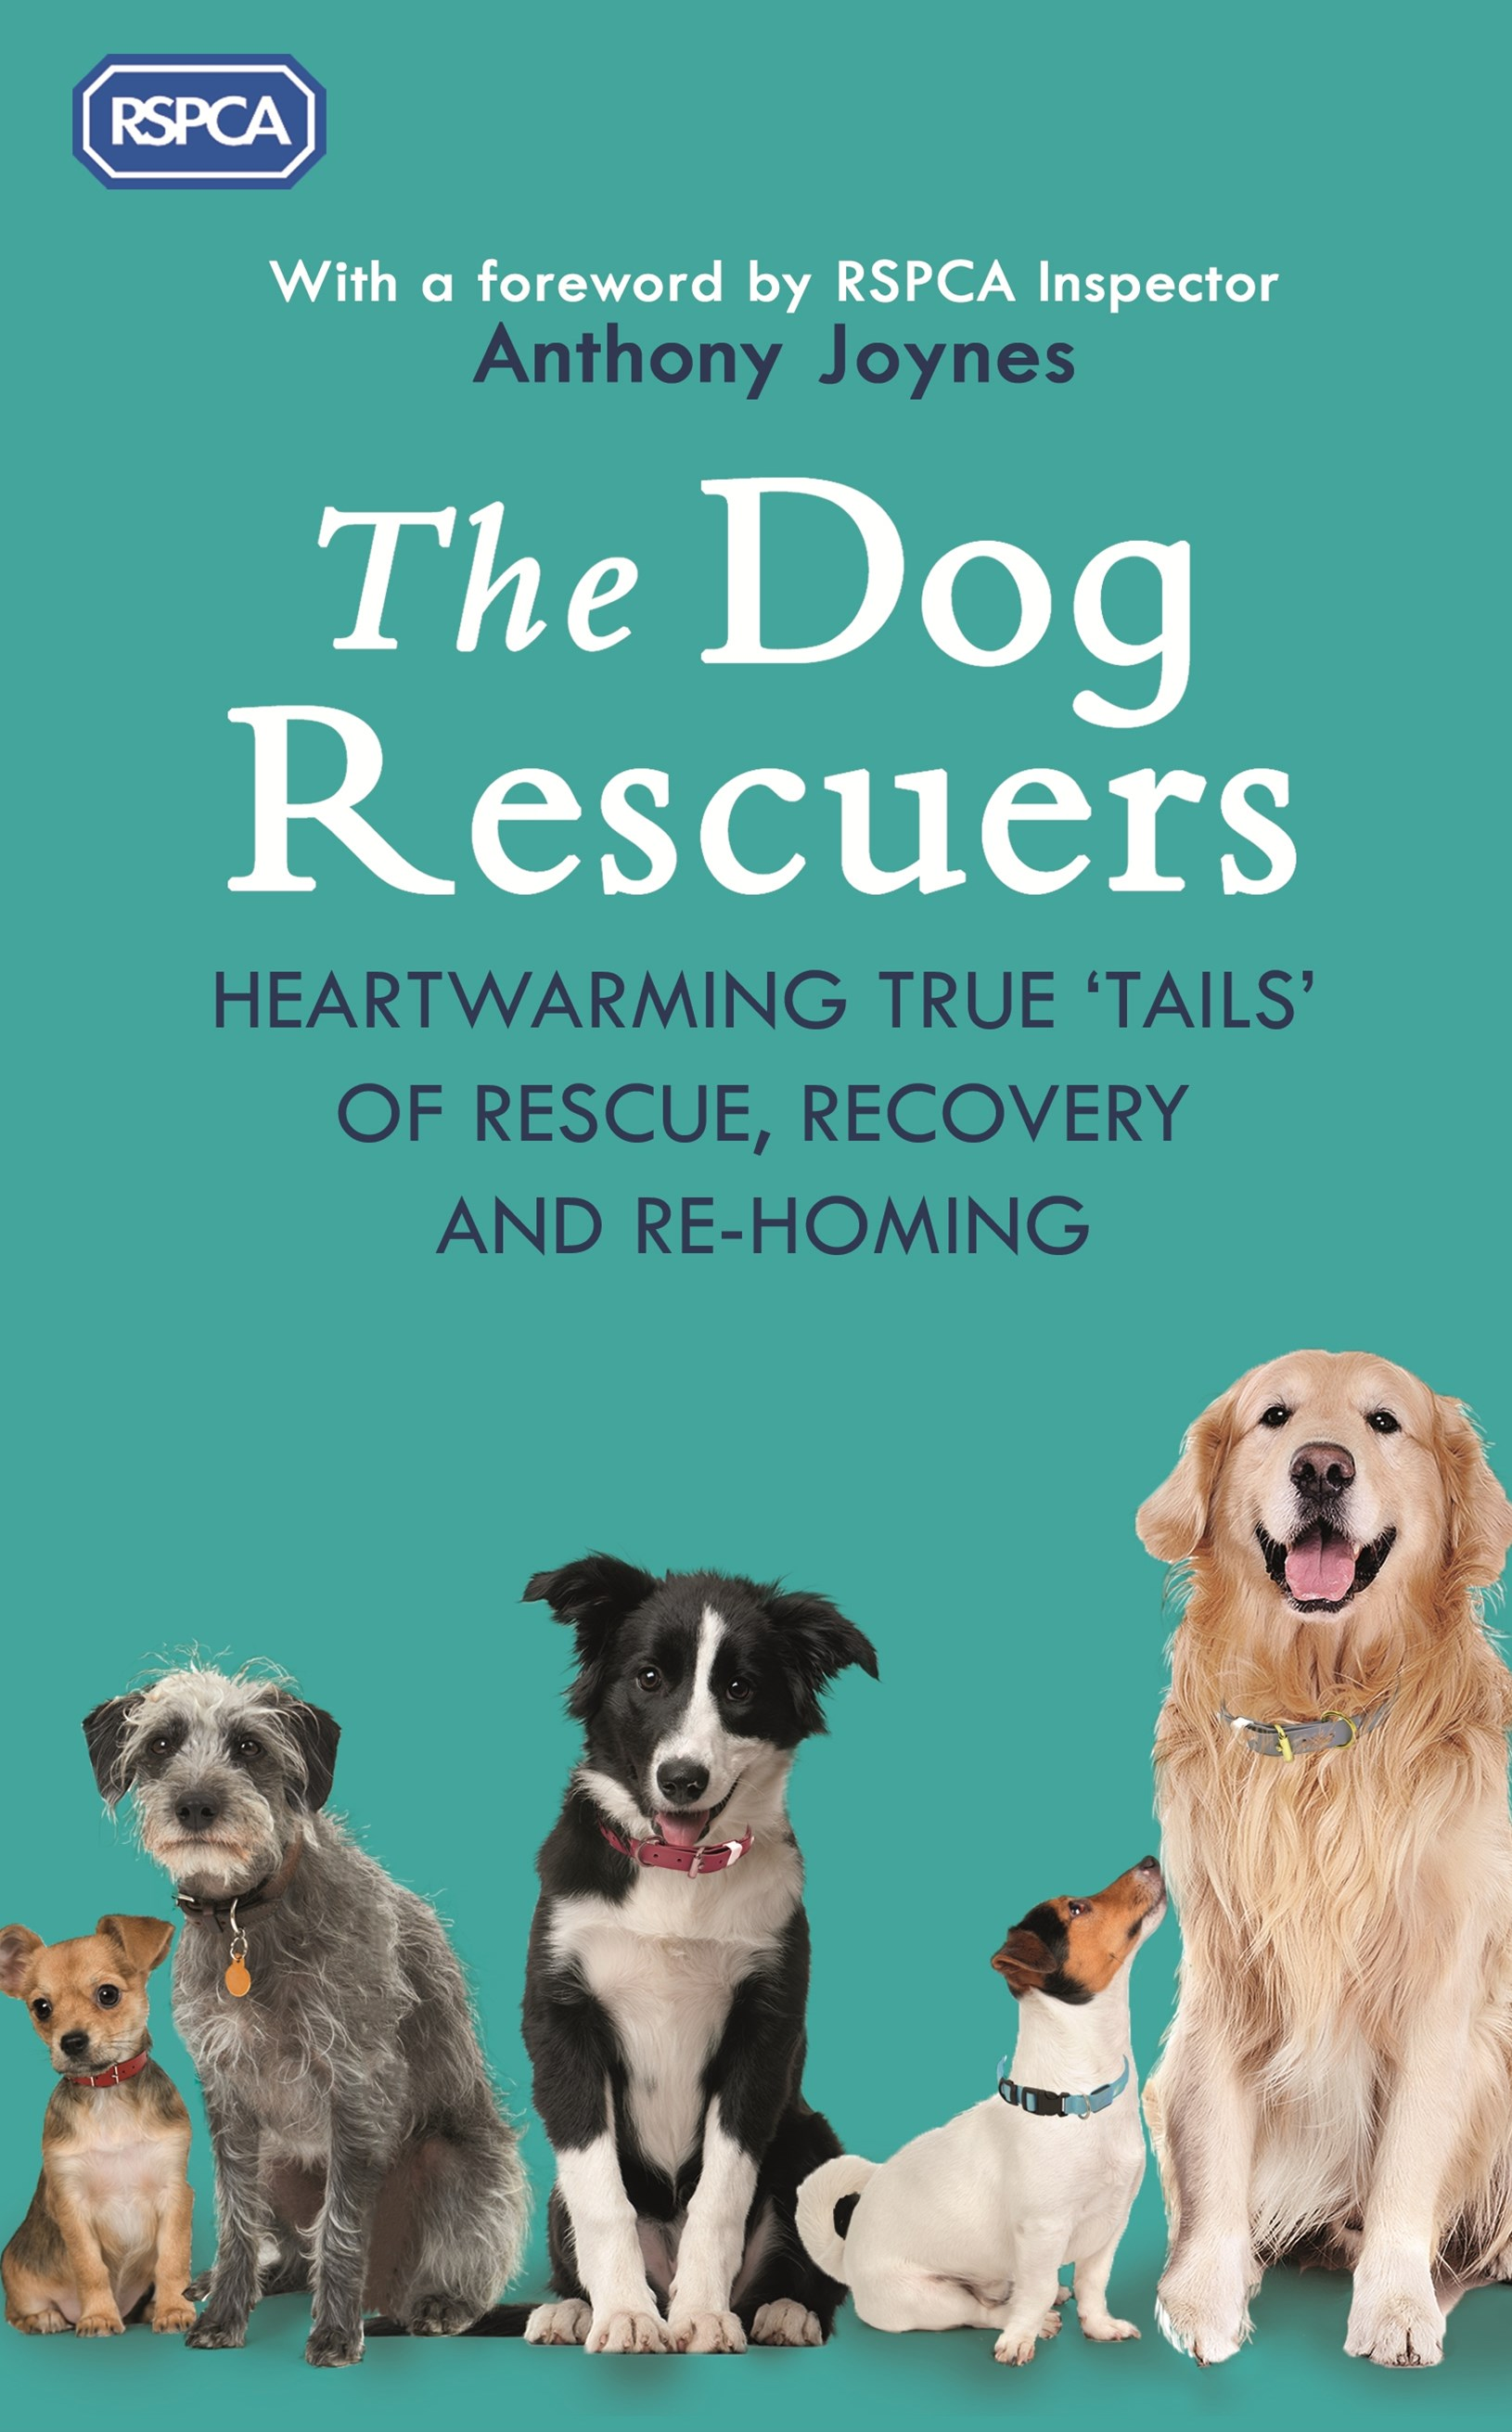 The Dog Rescuers: Heartwarming true tails of rescue, recovery and re-homing